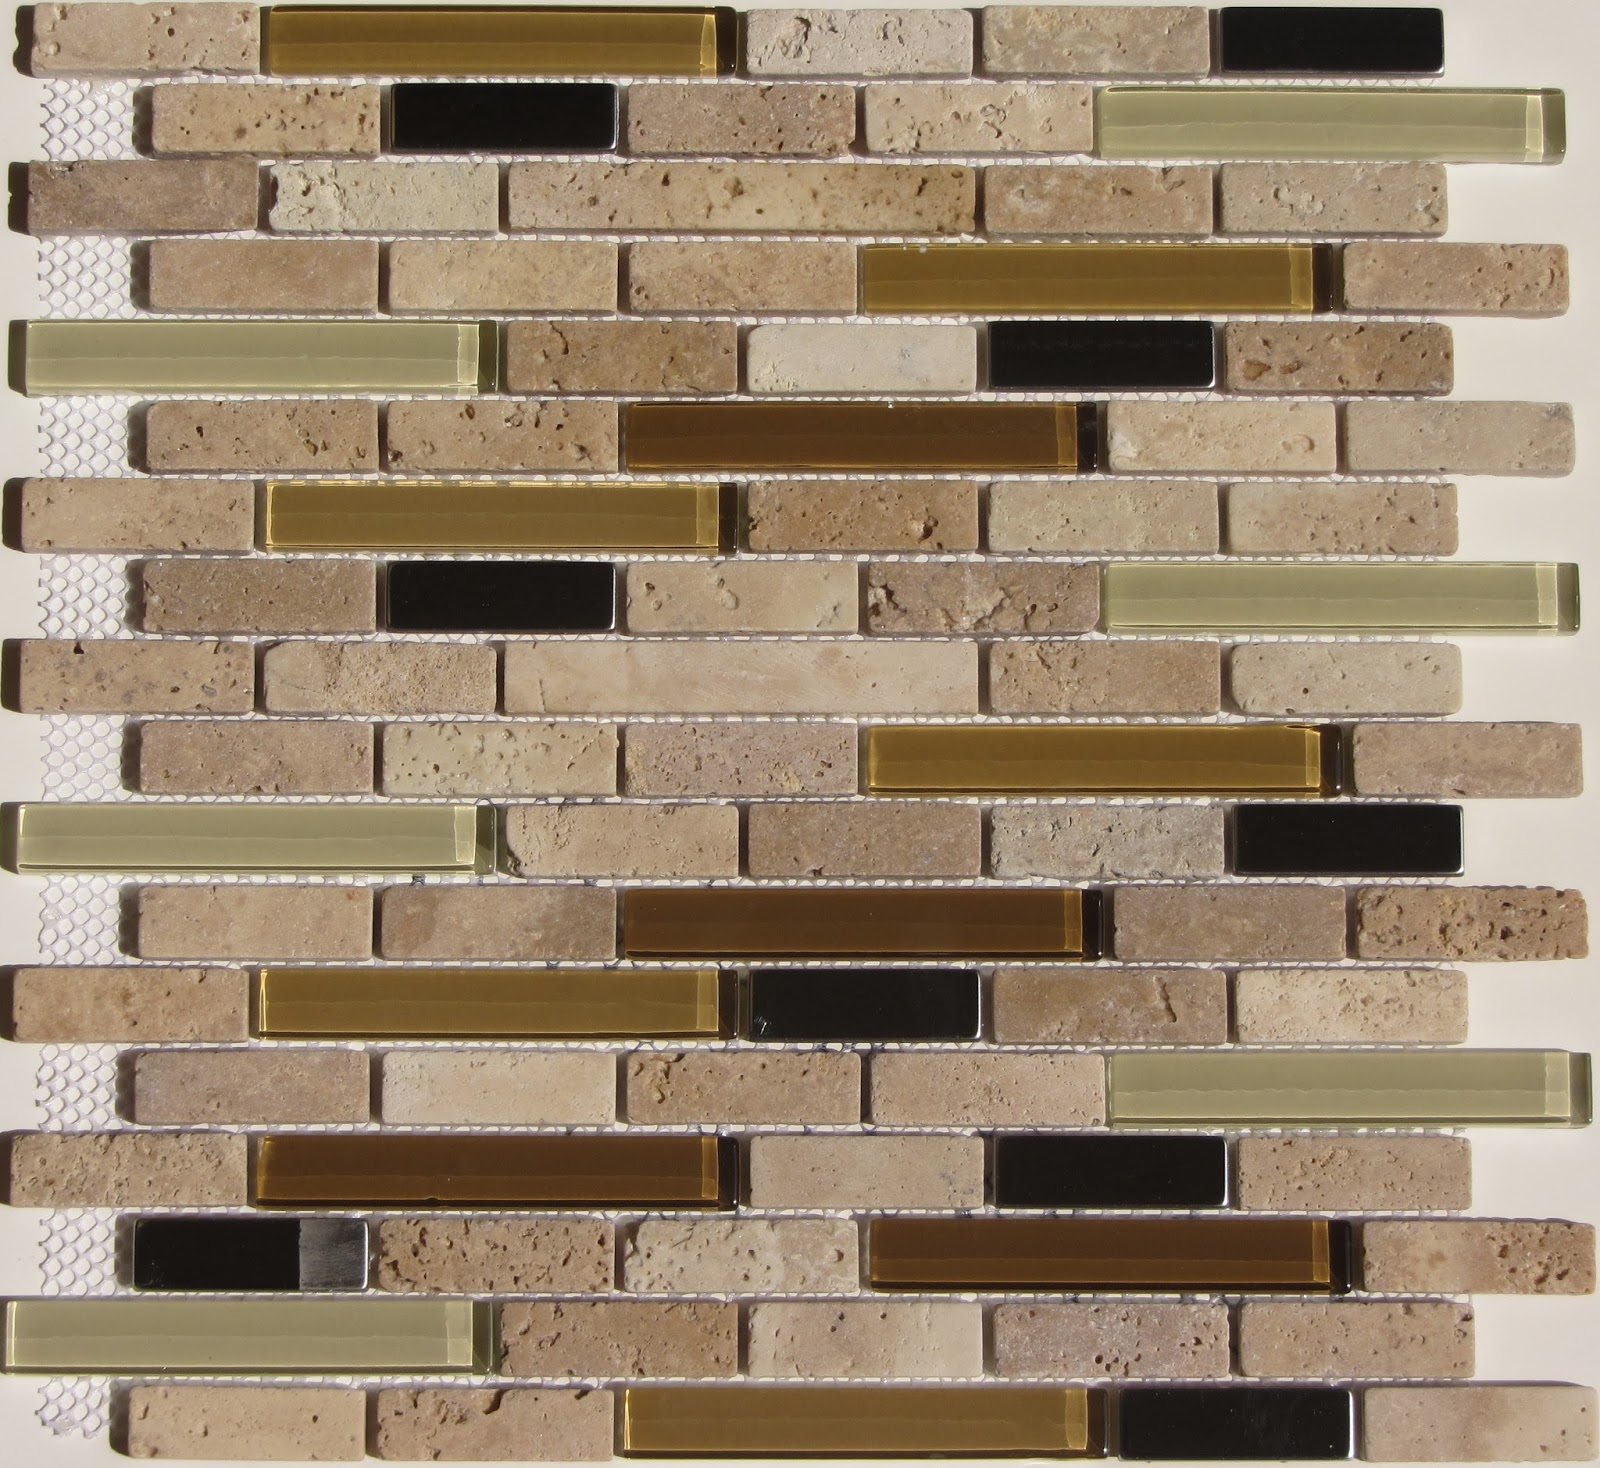 Self Adhesive Backsplash Tiles Related Keywords Self